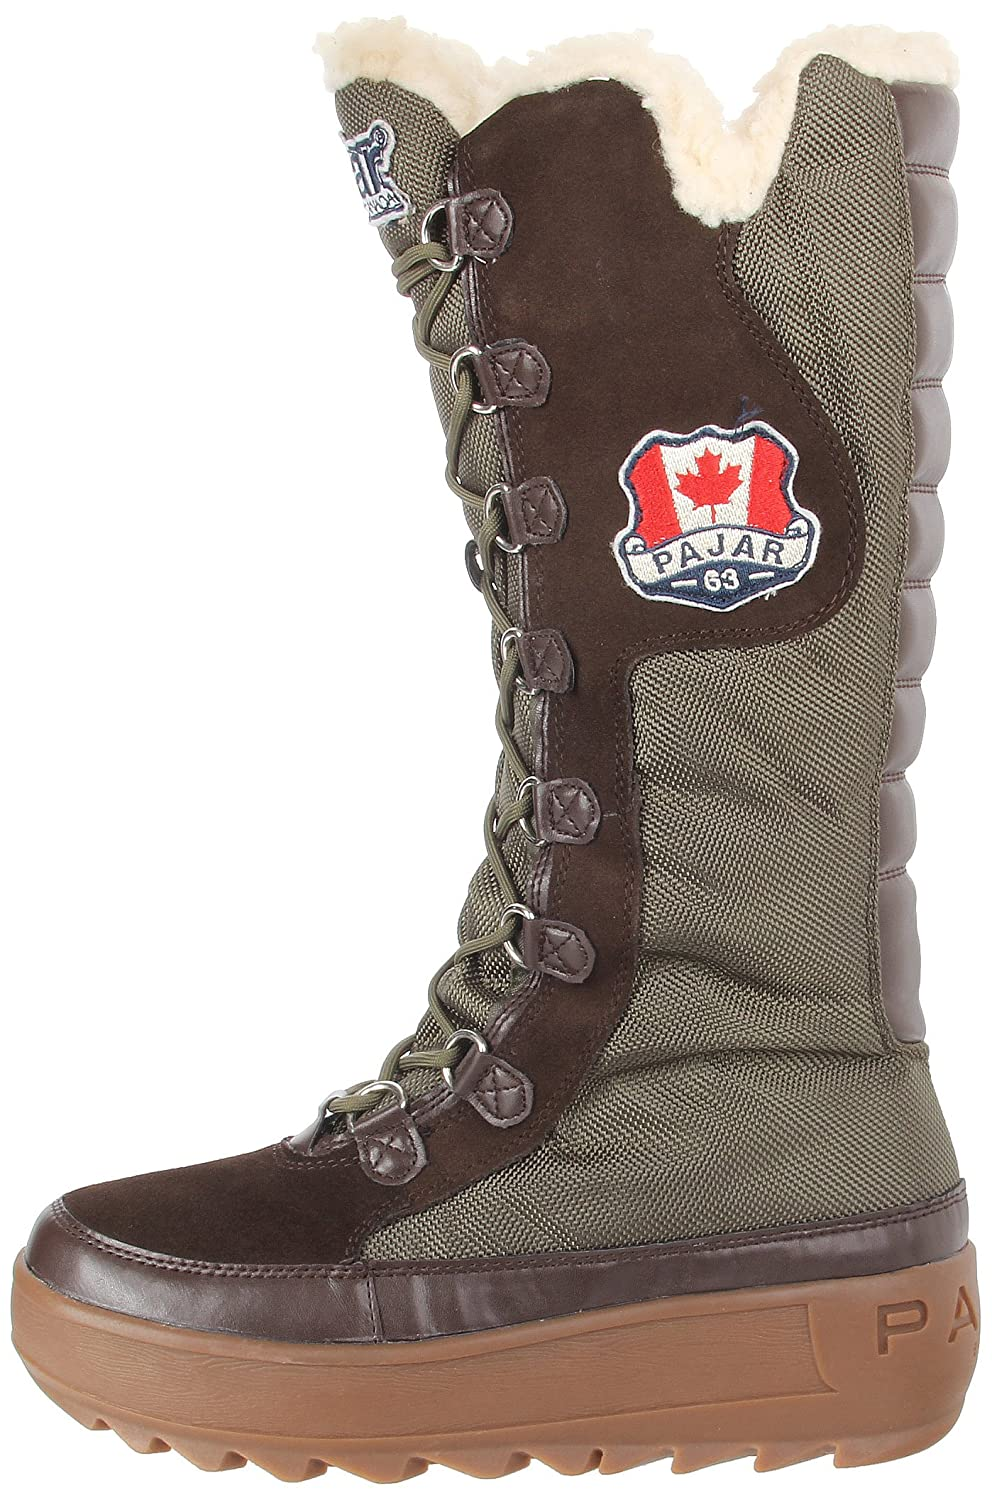 Pajar 36 Women's Greenland Boot B00D3090NM 36 Pajar EU|Military Green/Dark Brown a83b43